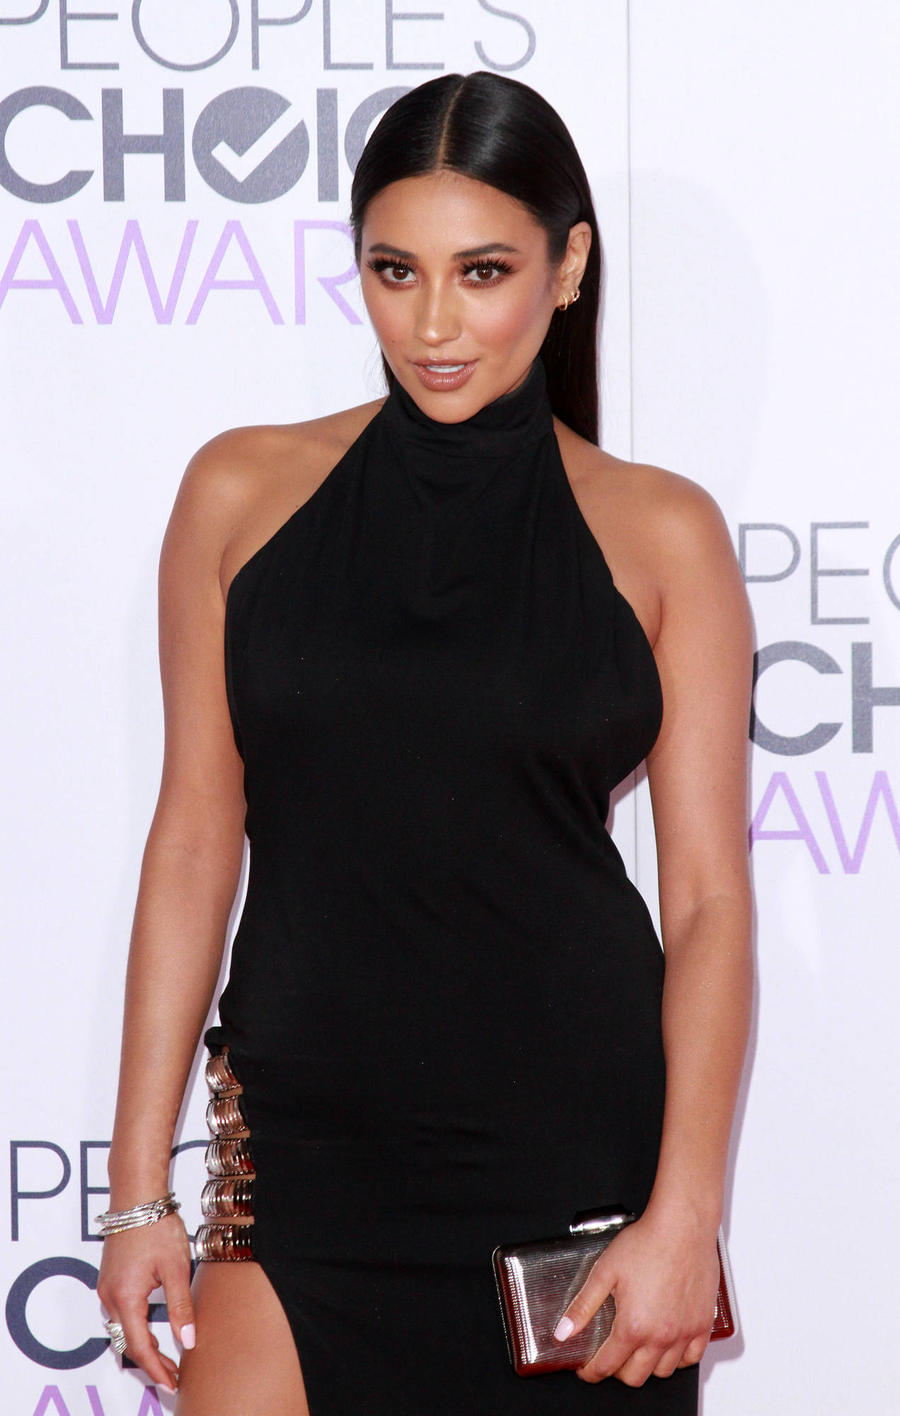 Shay Mitchell: 'Don't Let Photoshop Distort Your Image'